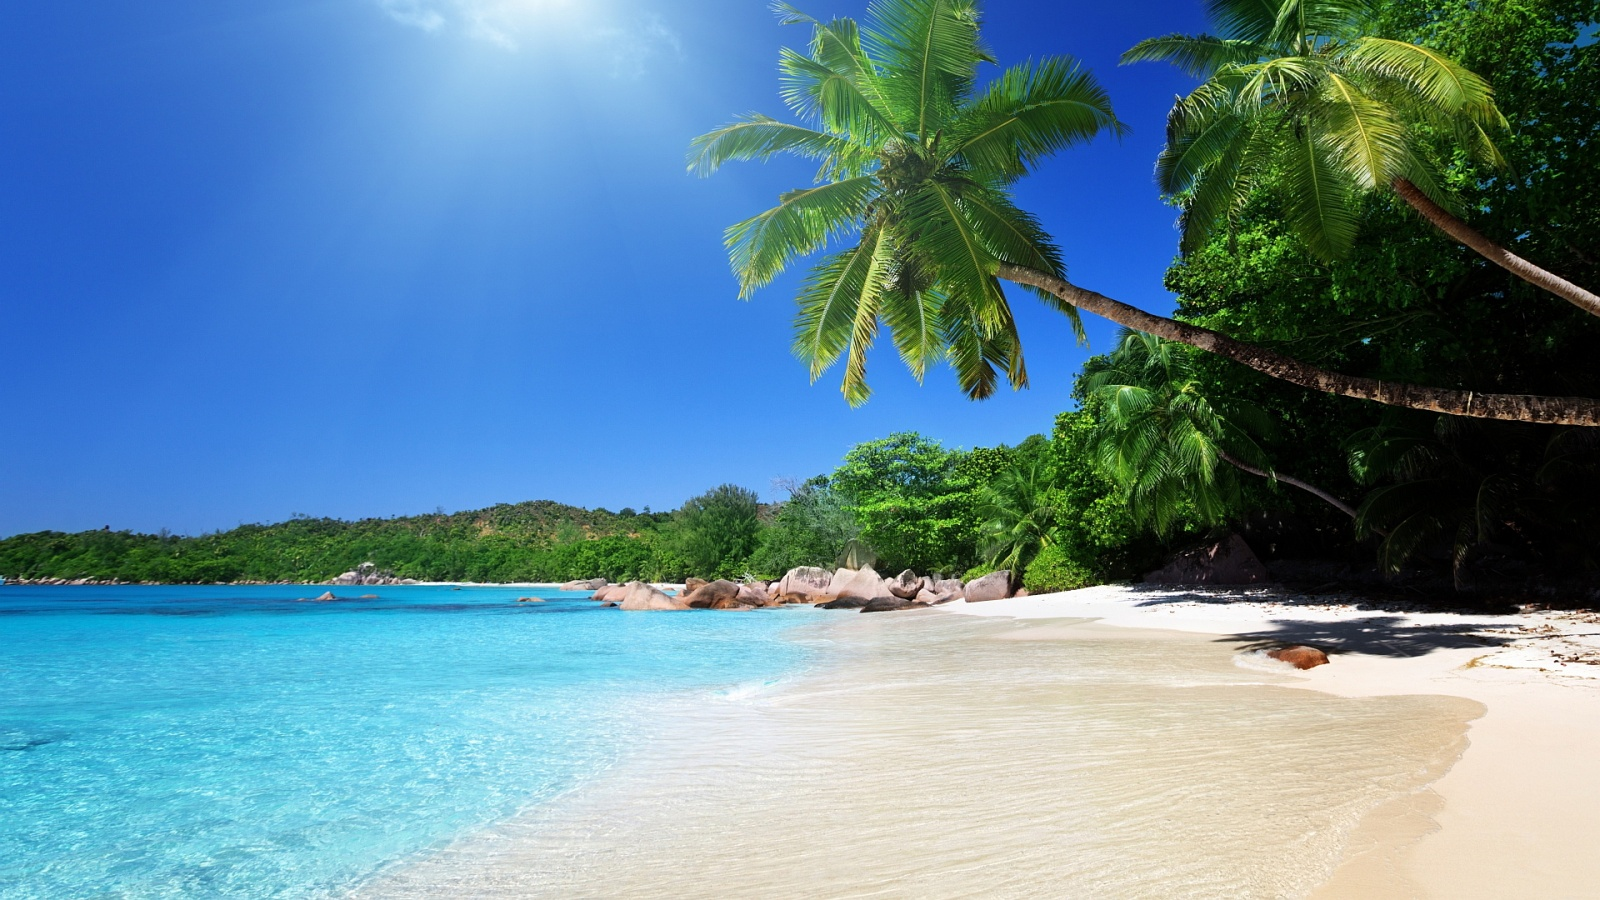 Tropical Islands Caribbean HD Wallpaper Background Images 1600x900